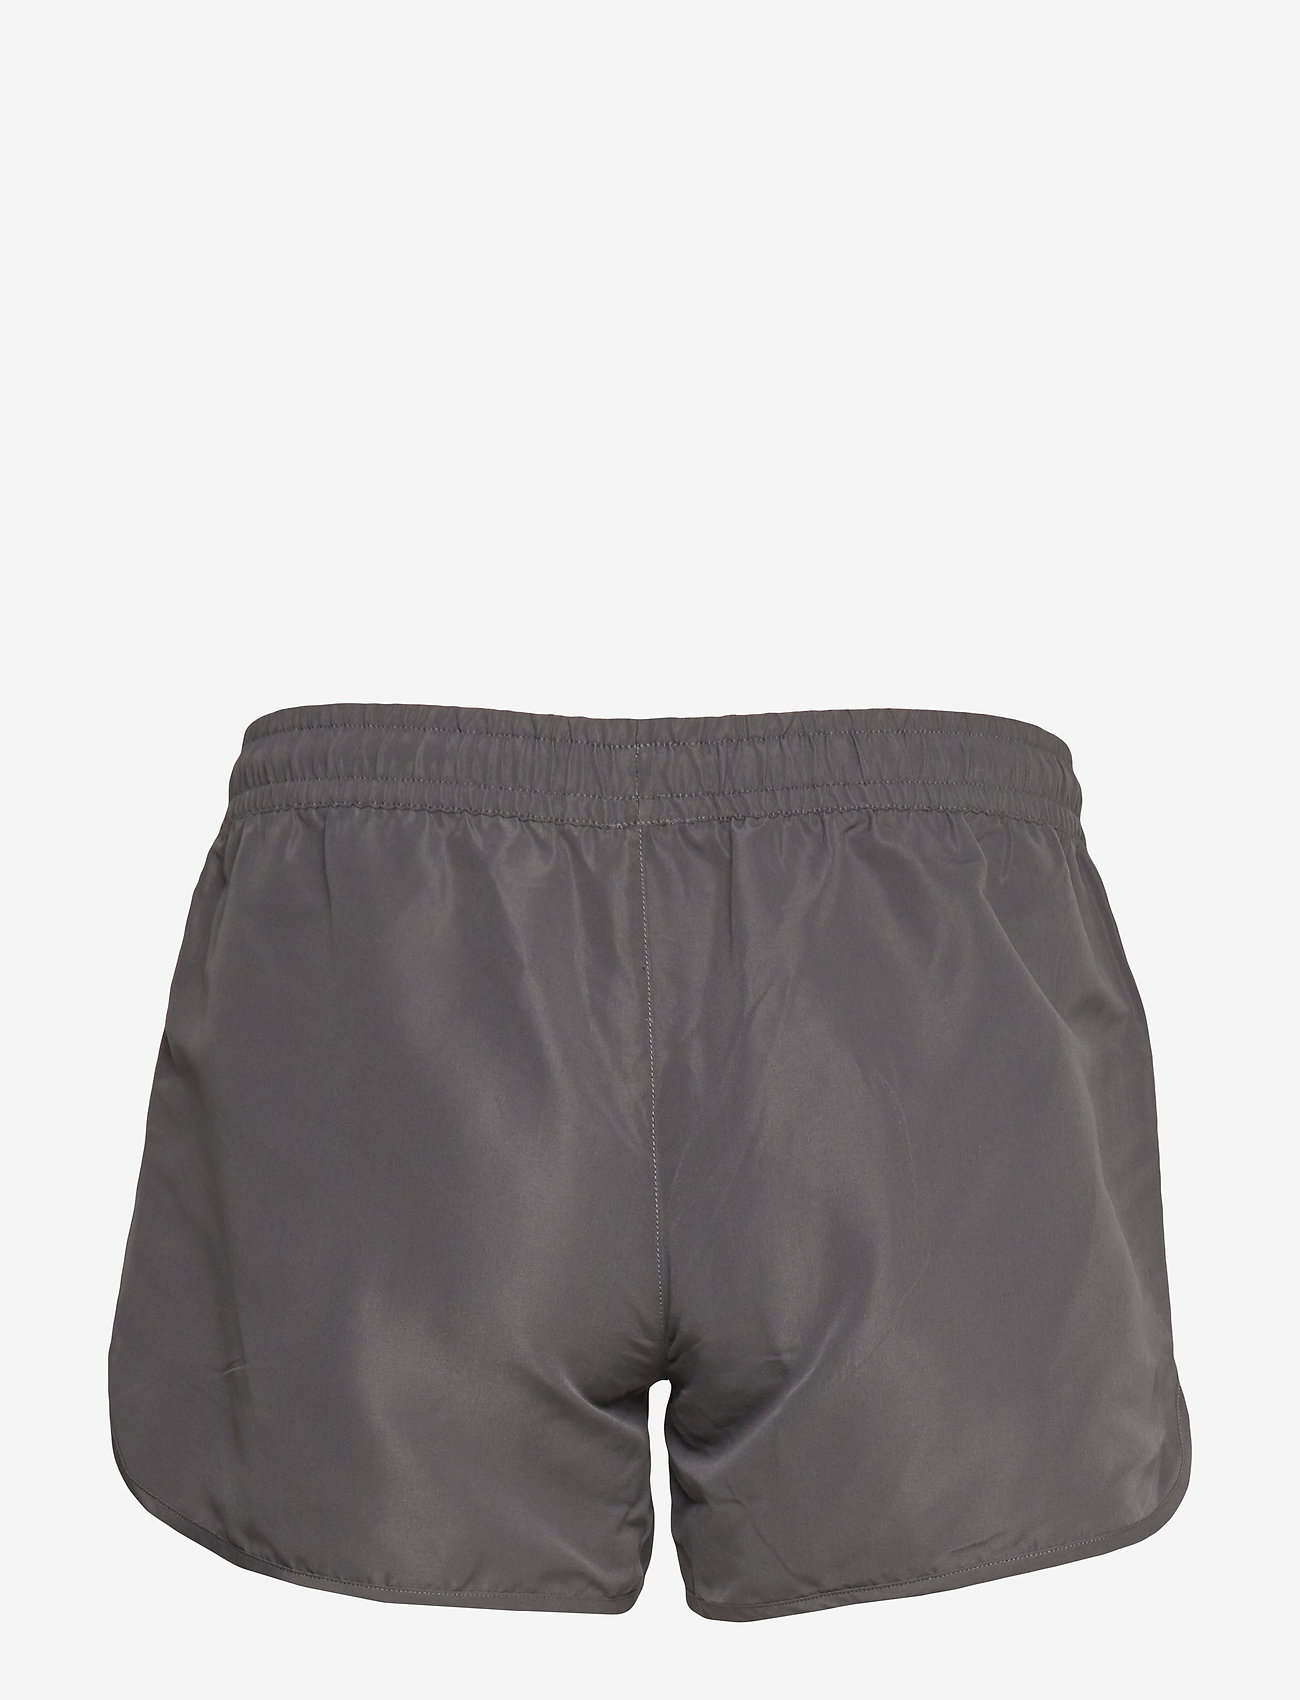 Skiny - L. shorts - beachwear - pavement grey - 1